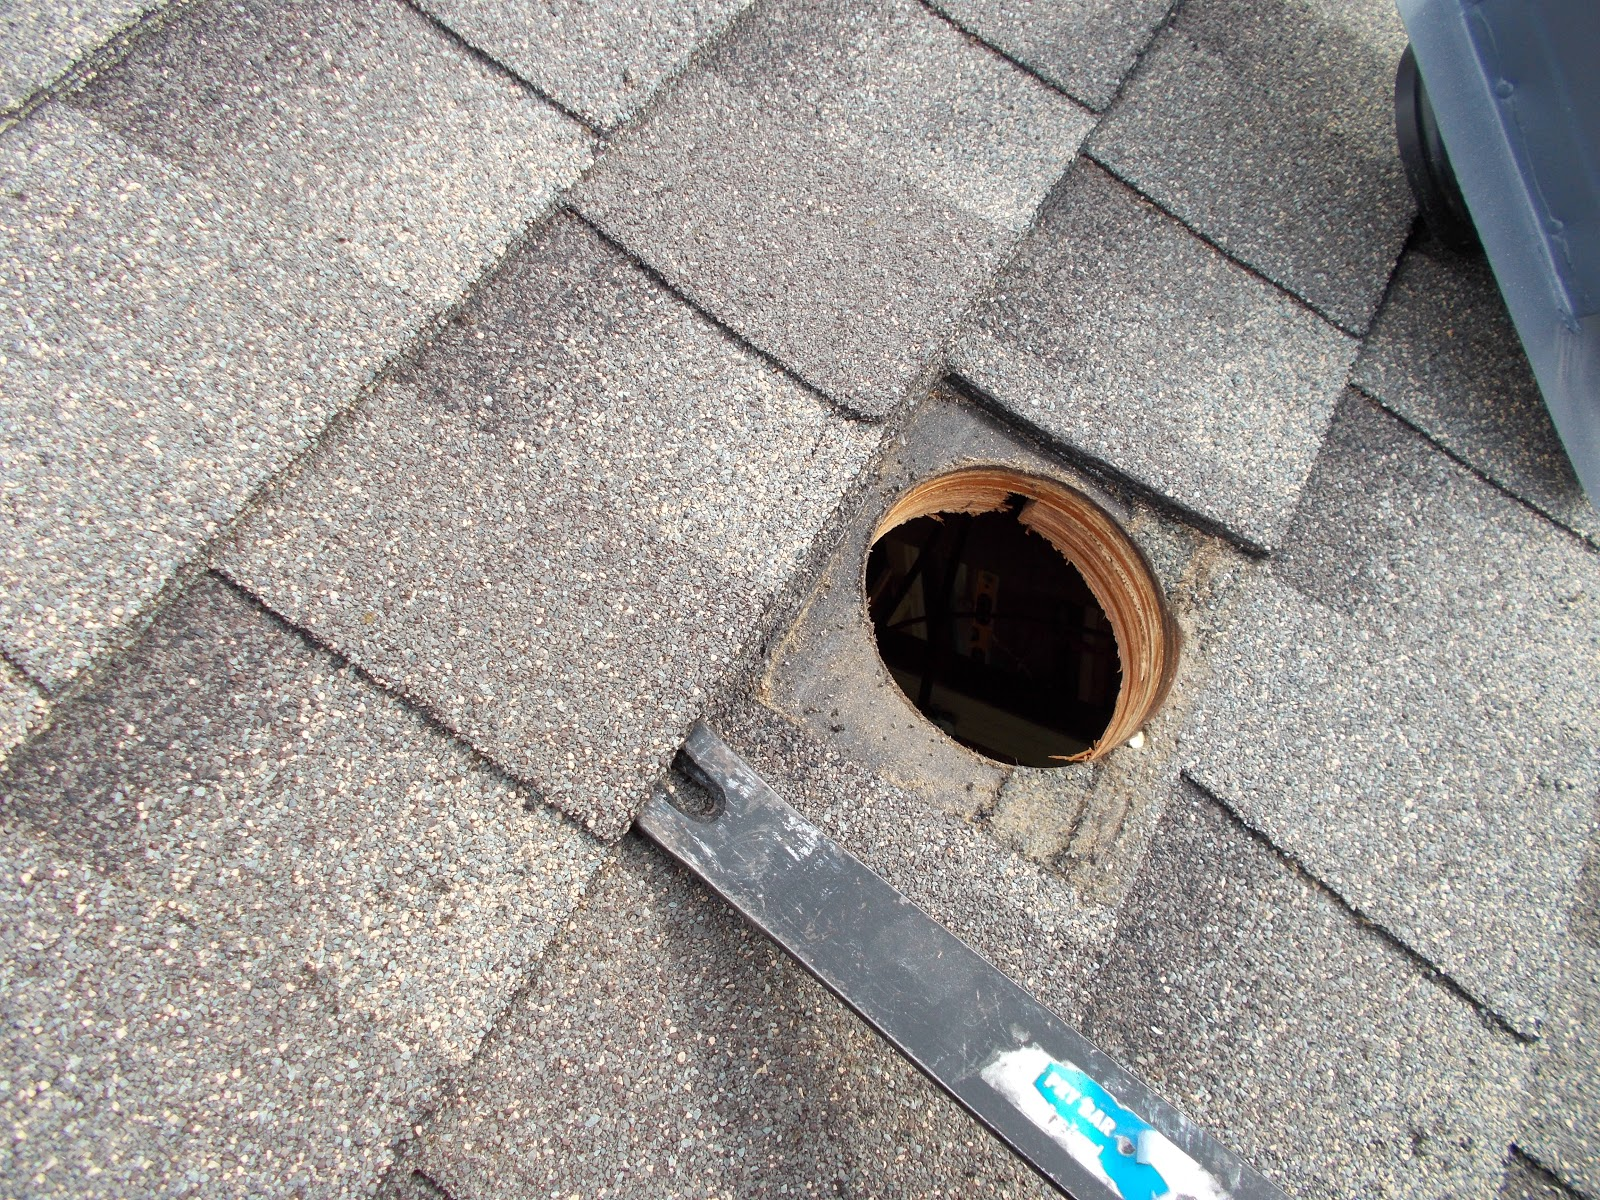 Venting A Bathroom Fan Through The Roof - Installing roof vent for bathroom exhaust fan